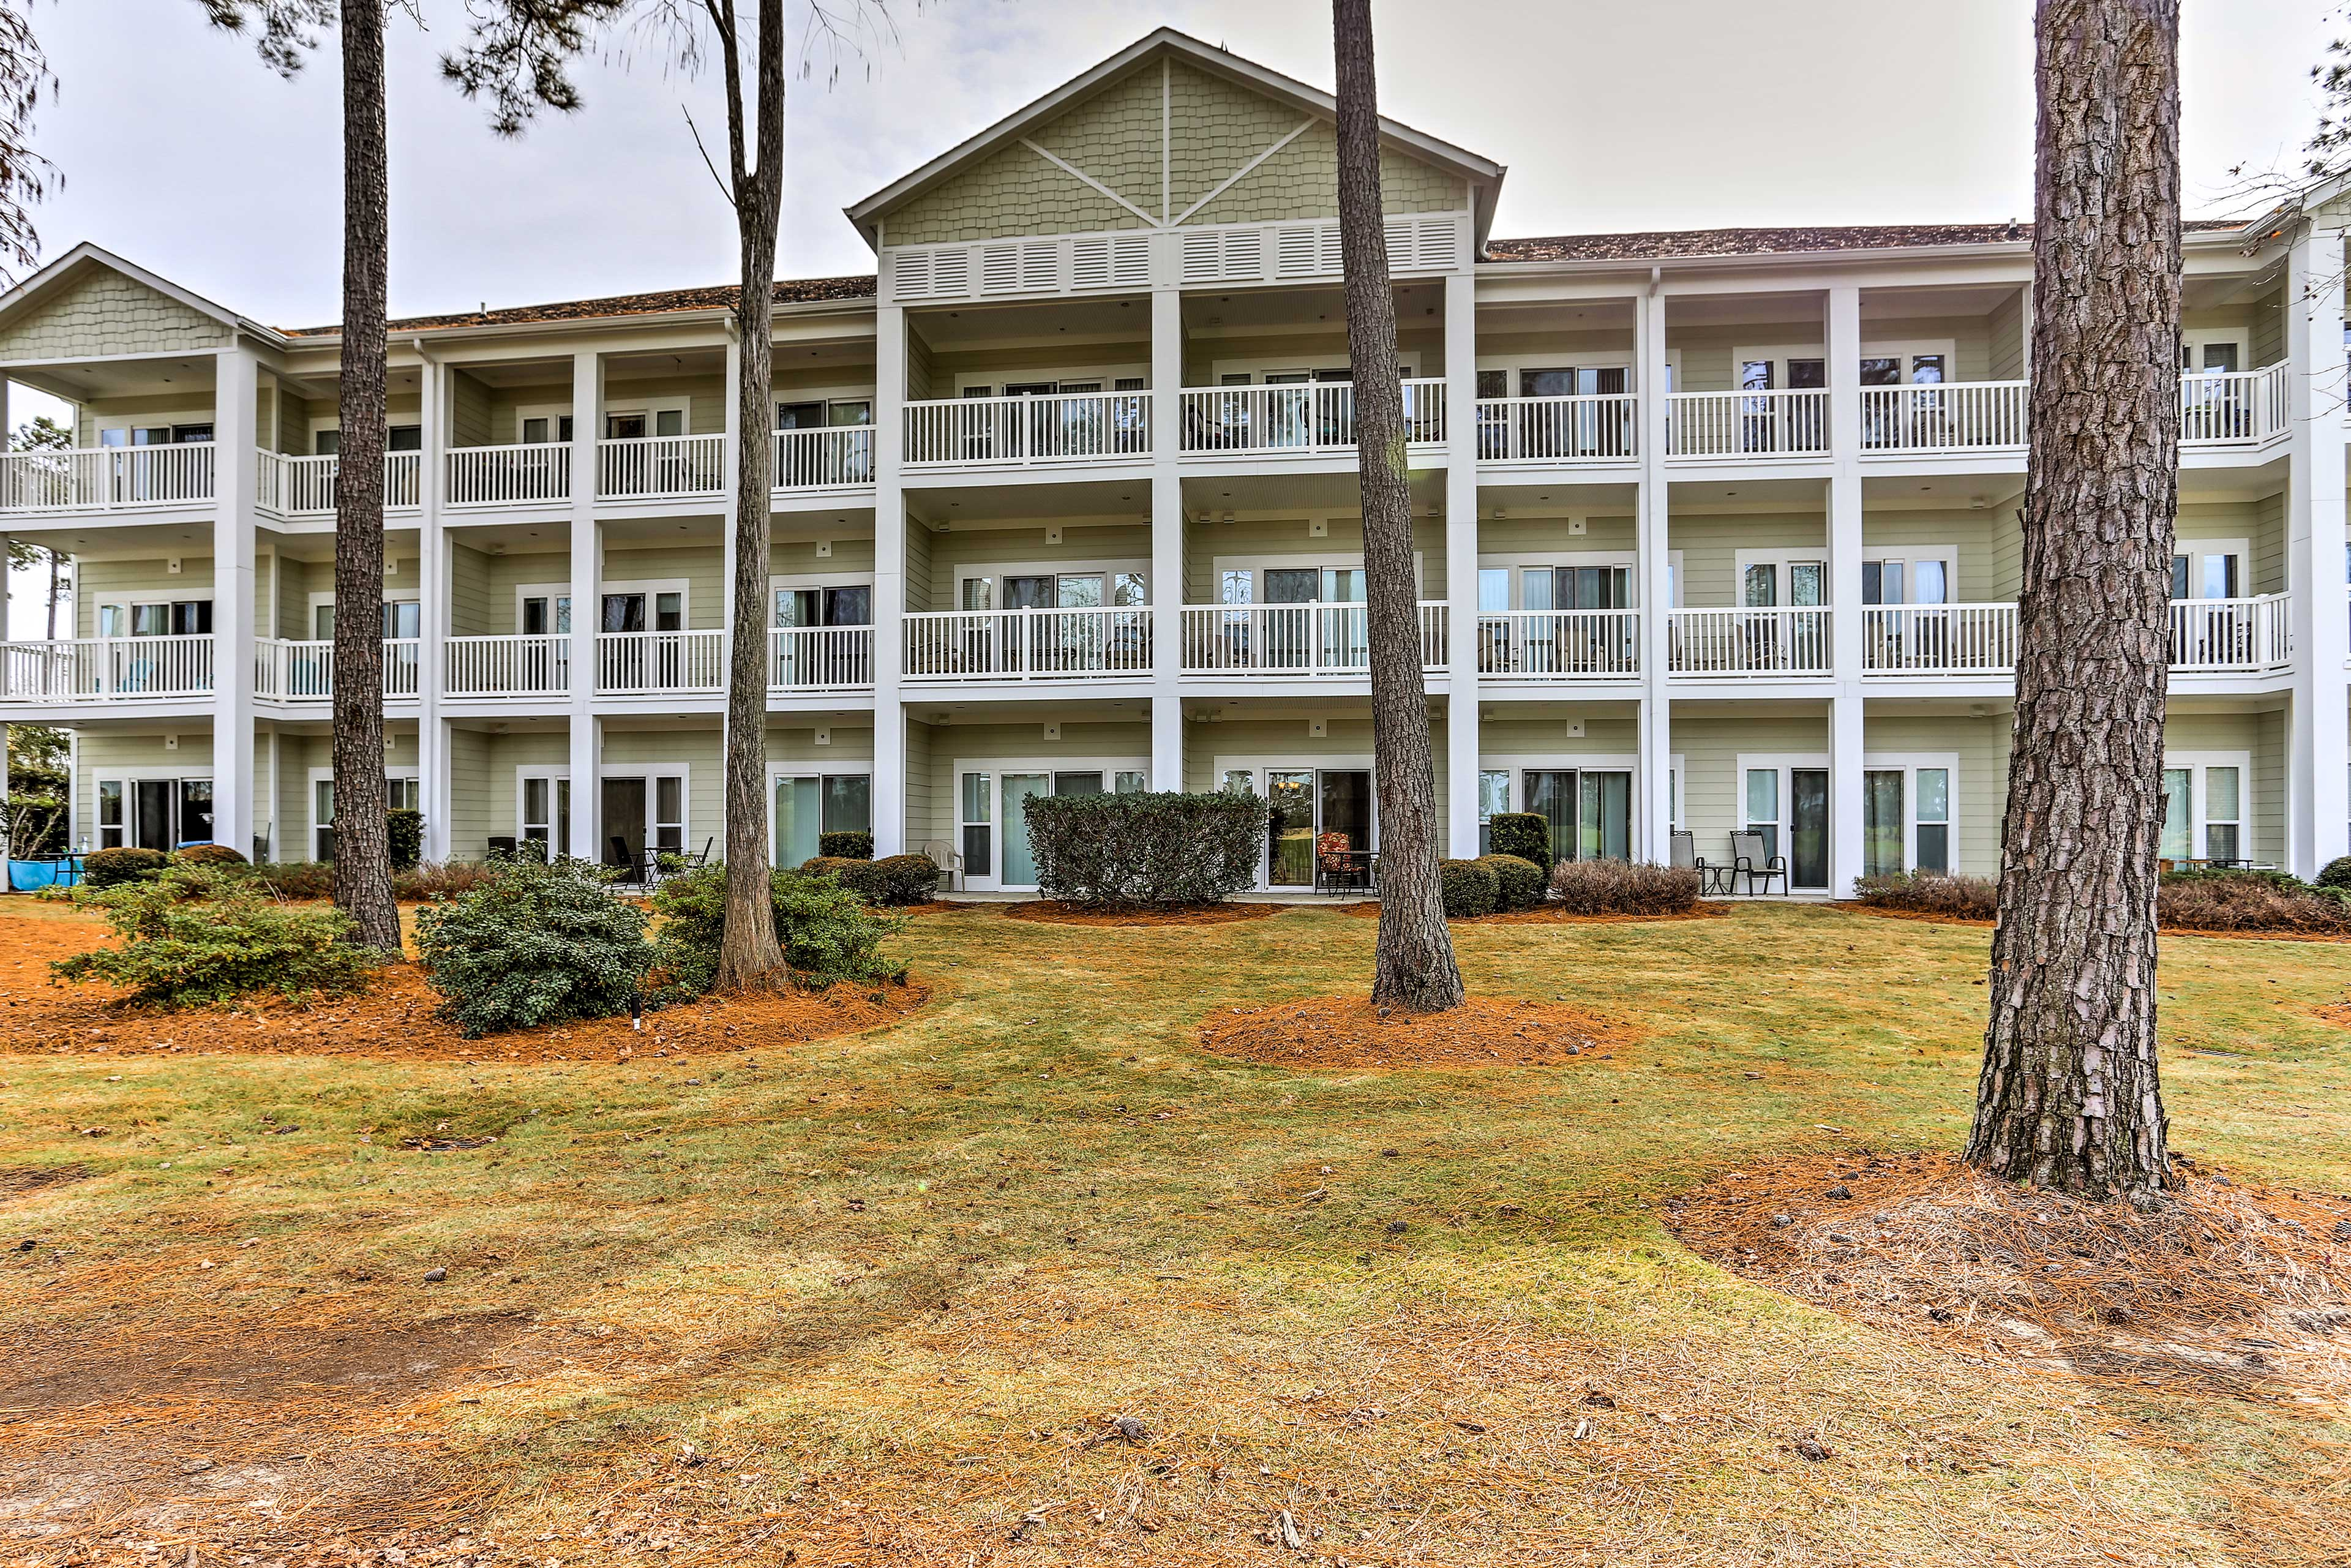 The golf course is just steps away from this condo!